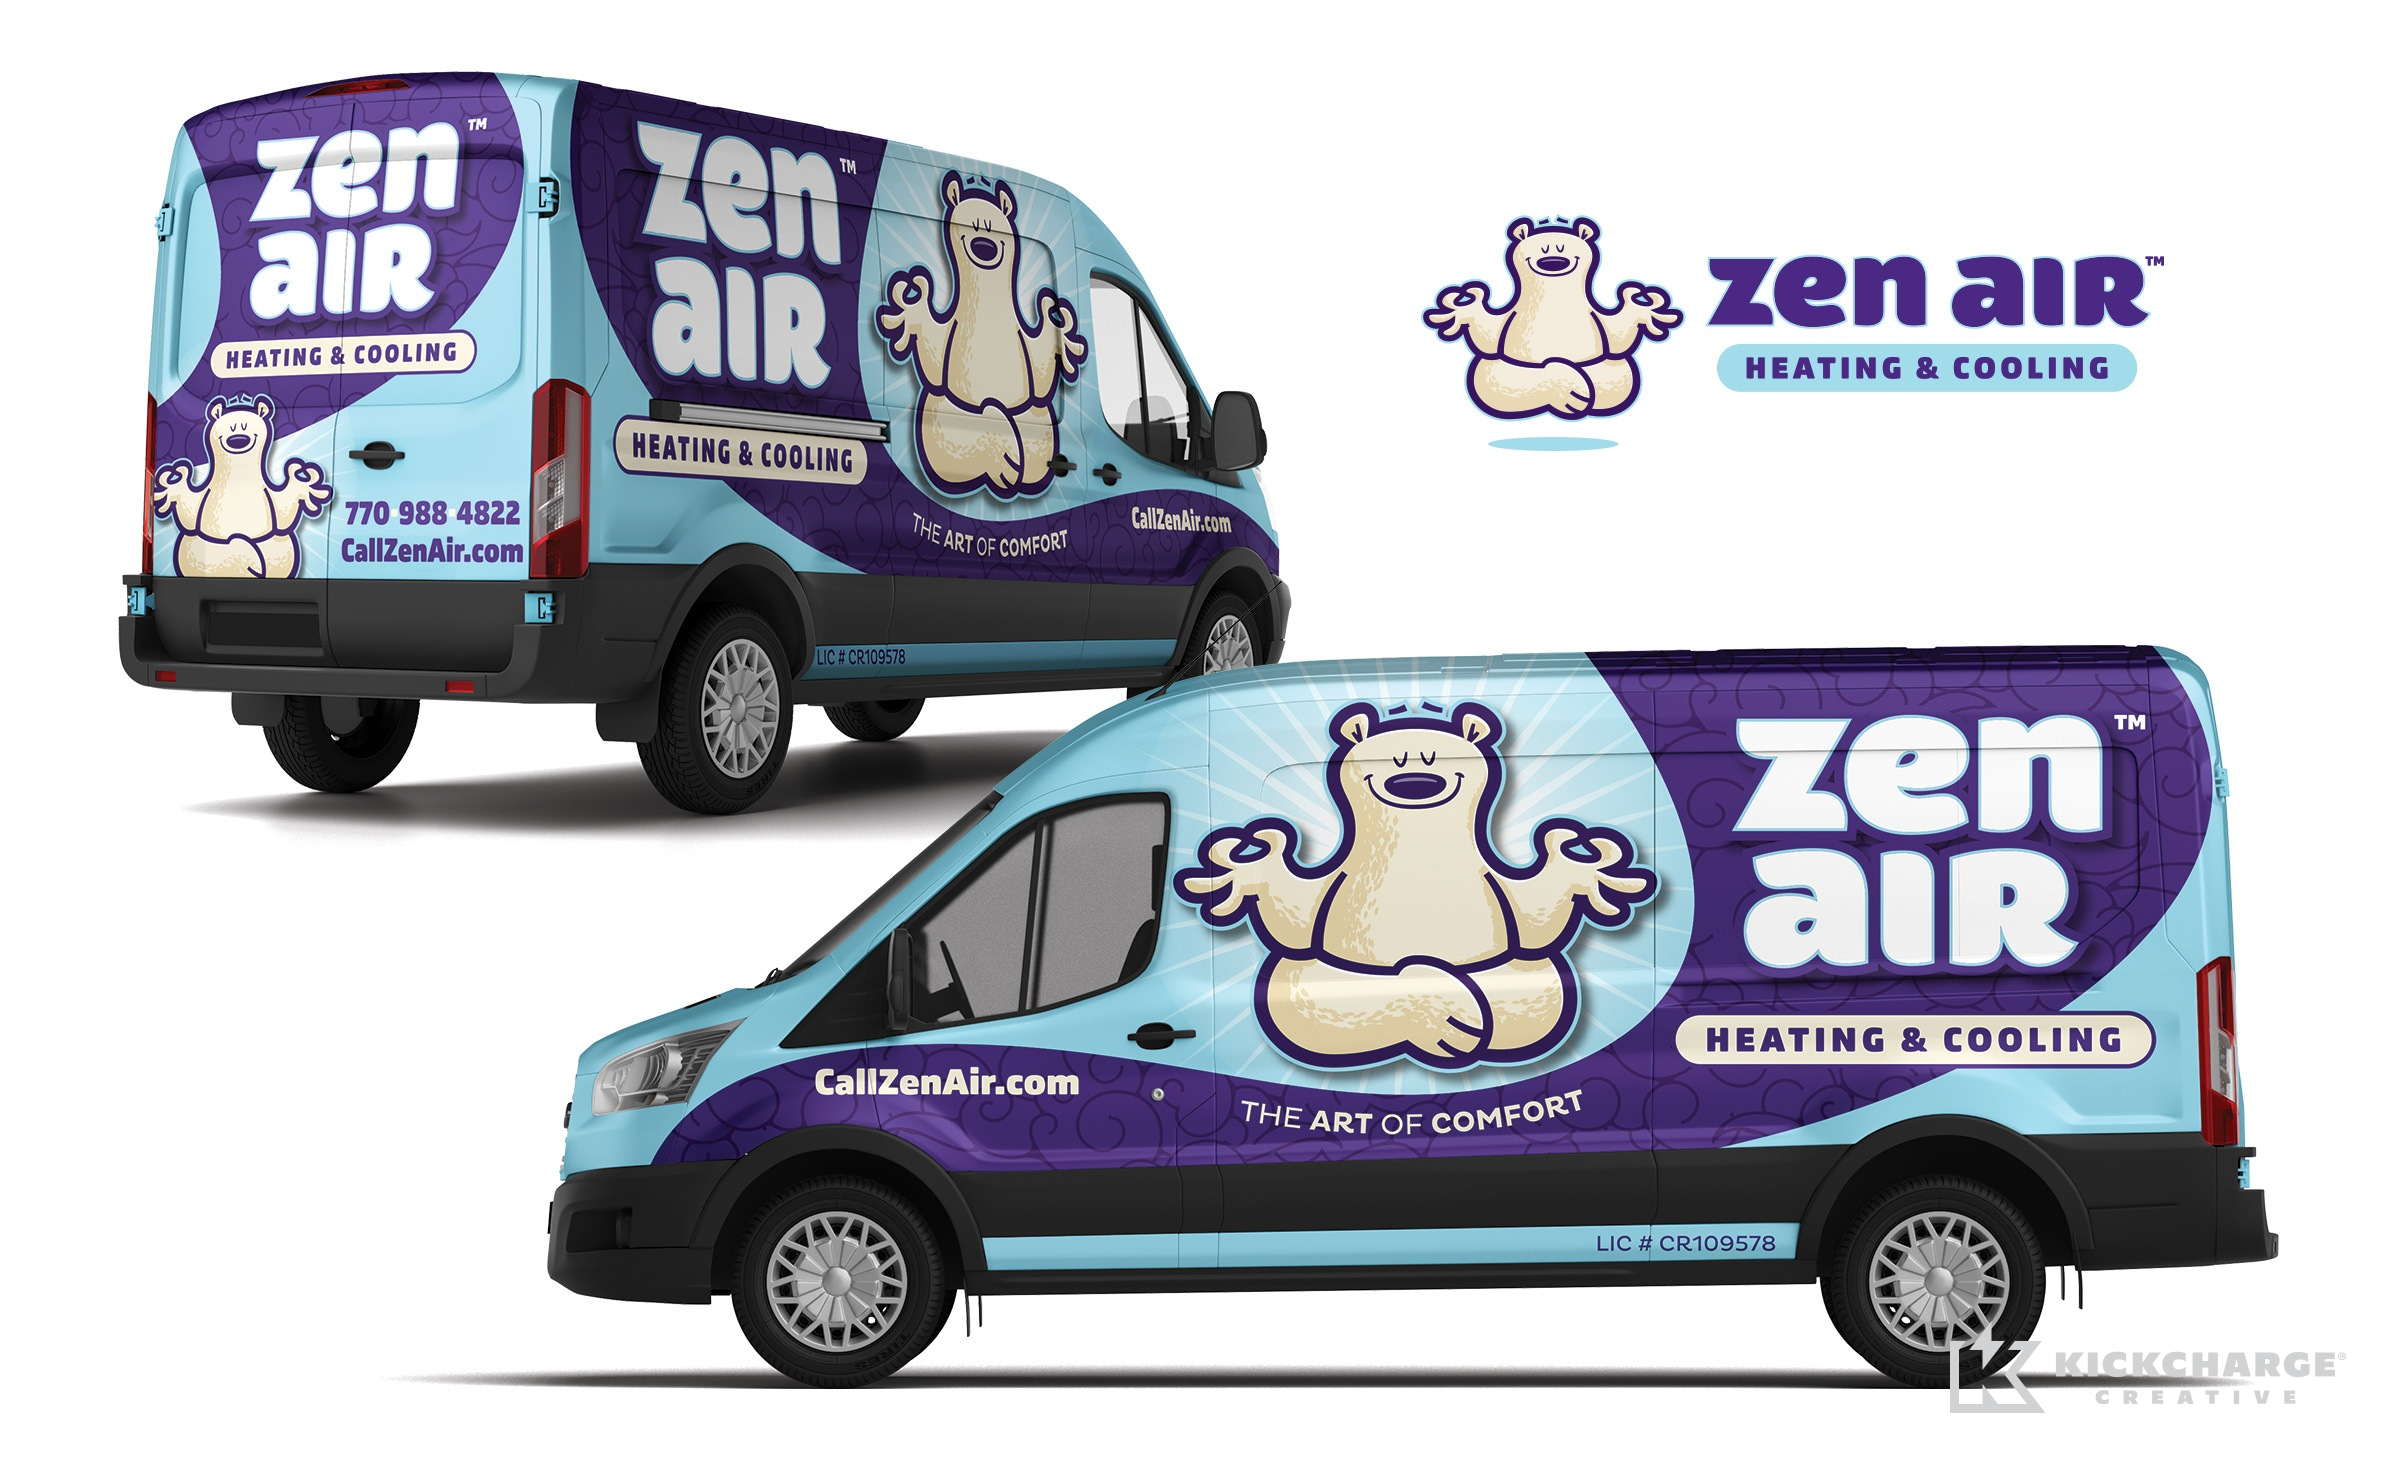 Zen Air Heating & Cooling